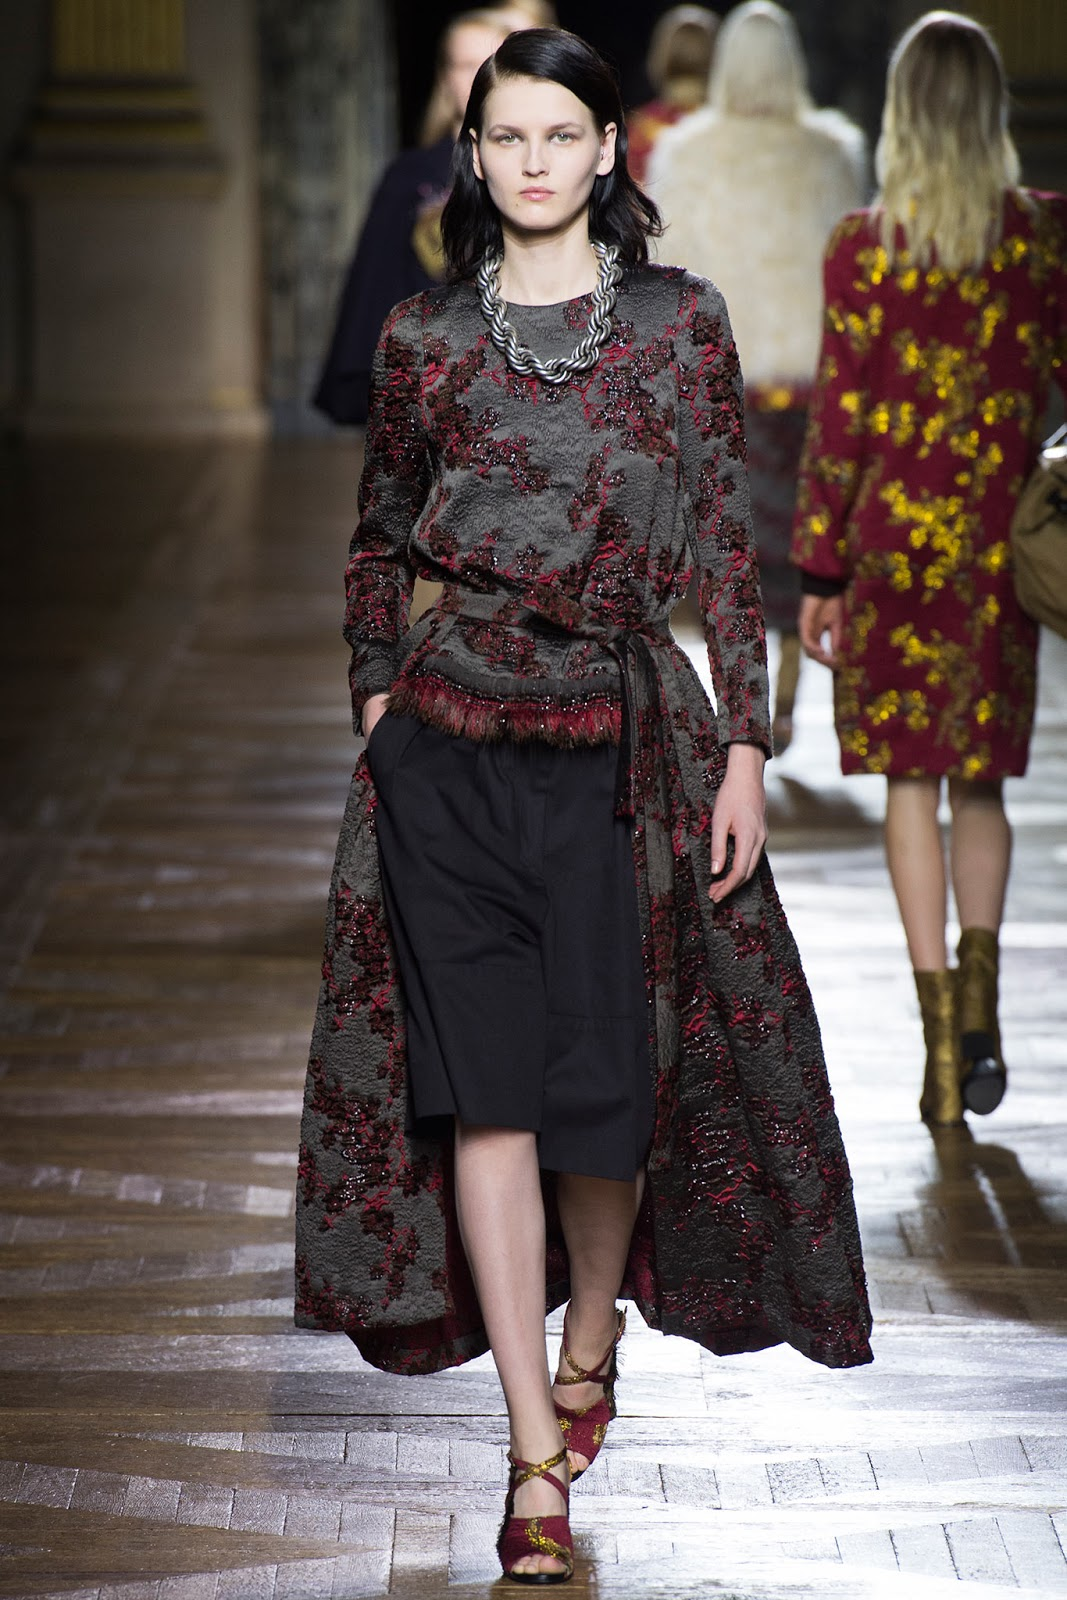 Dries van Noten Fall/Winter 2015